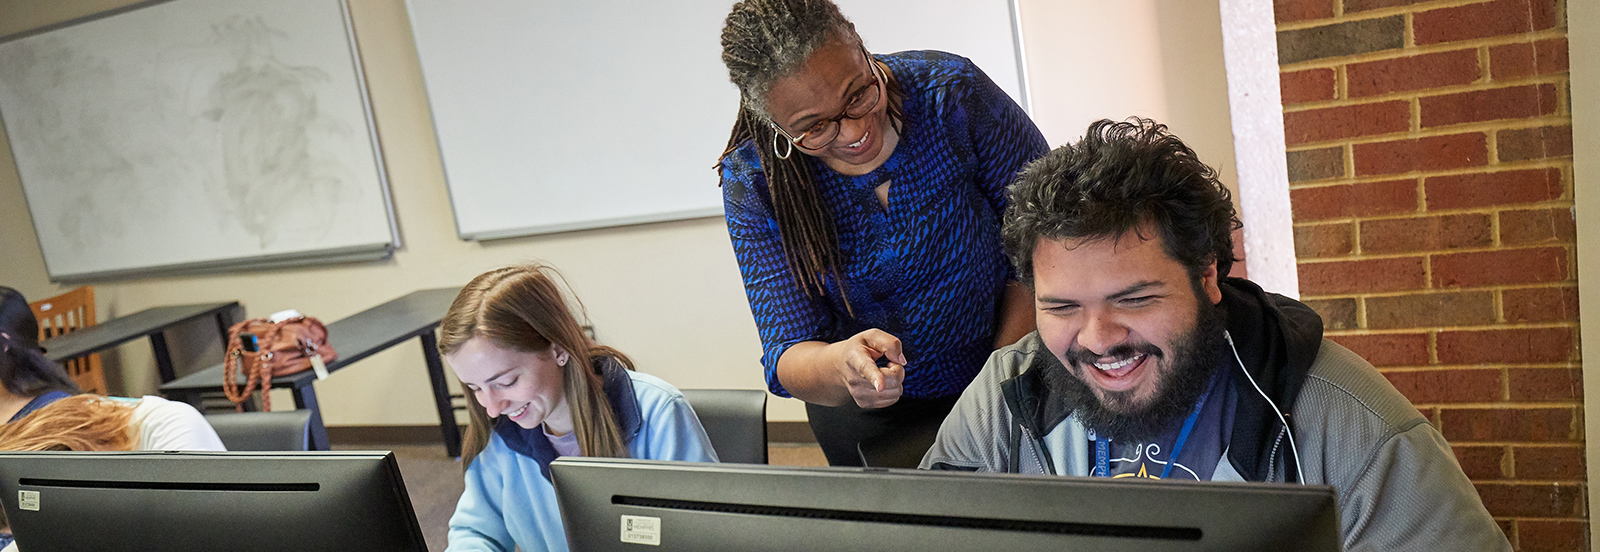 Teacher helping students at computer